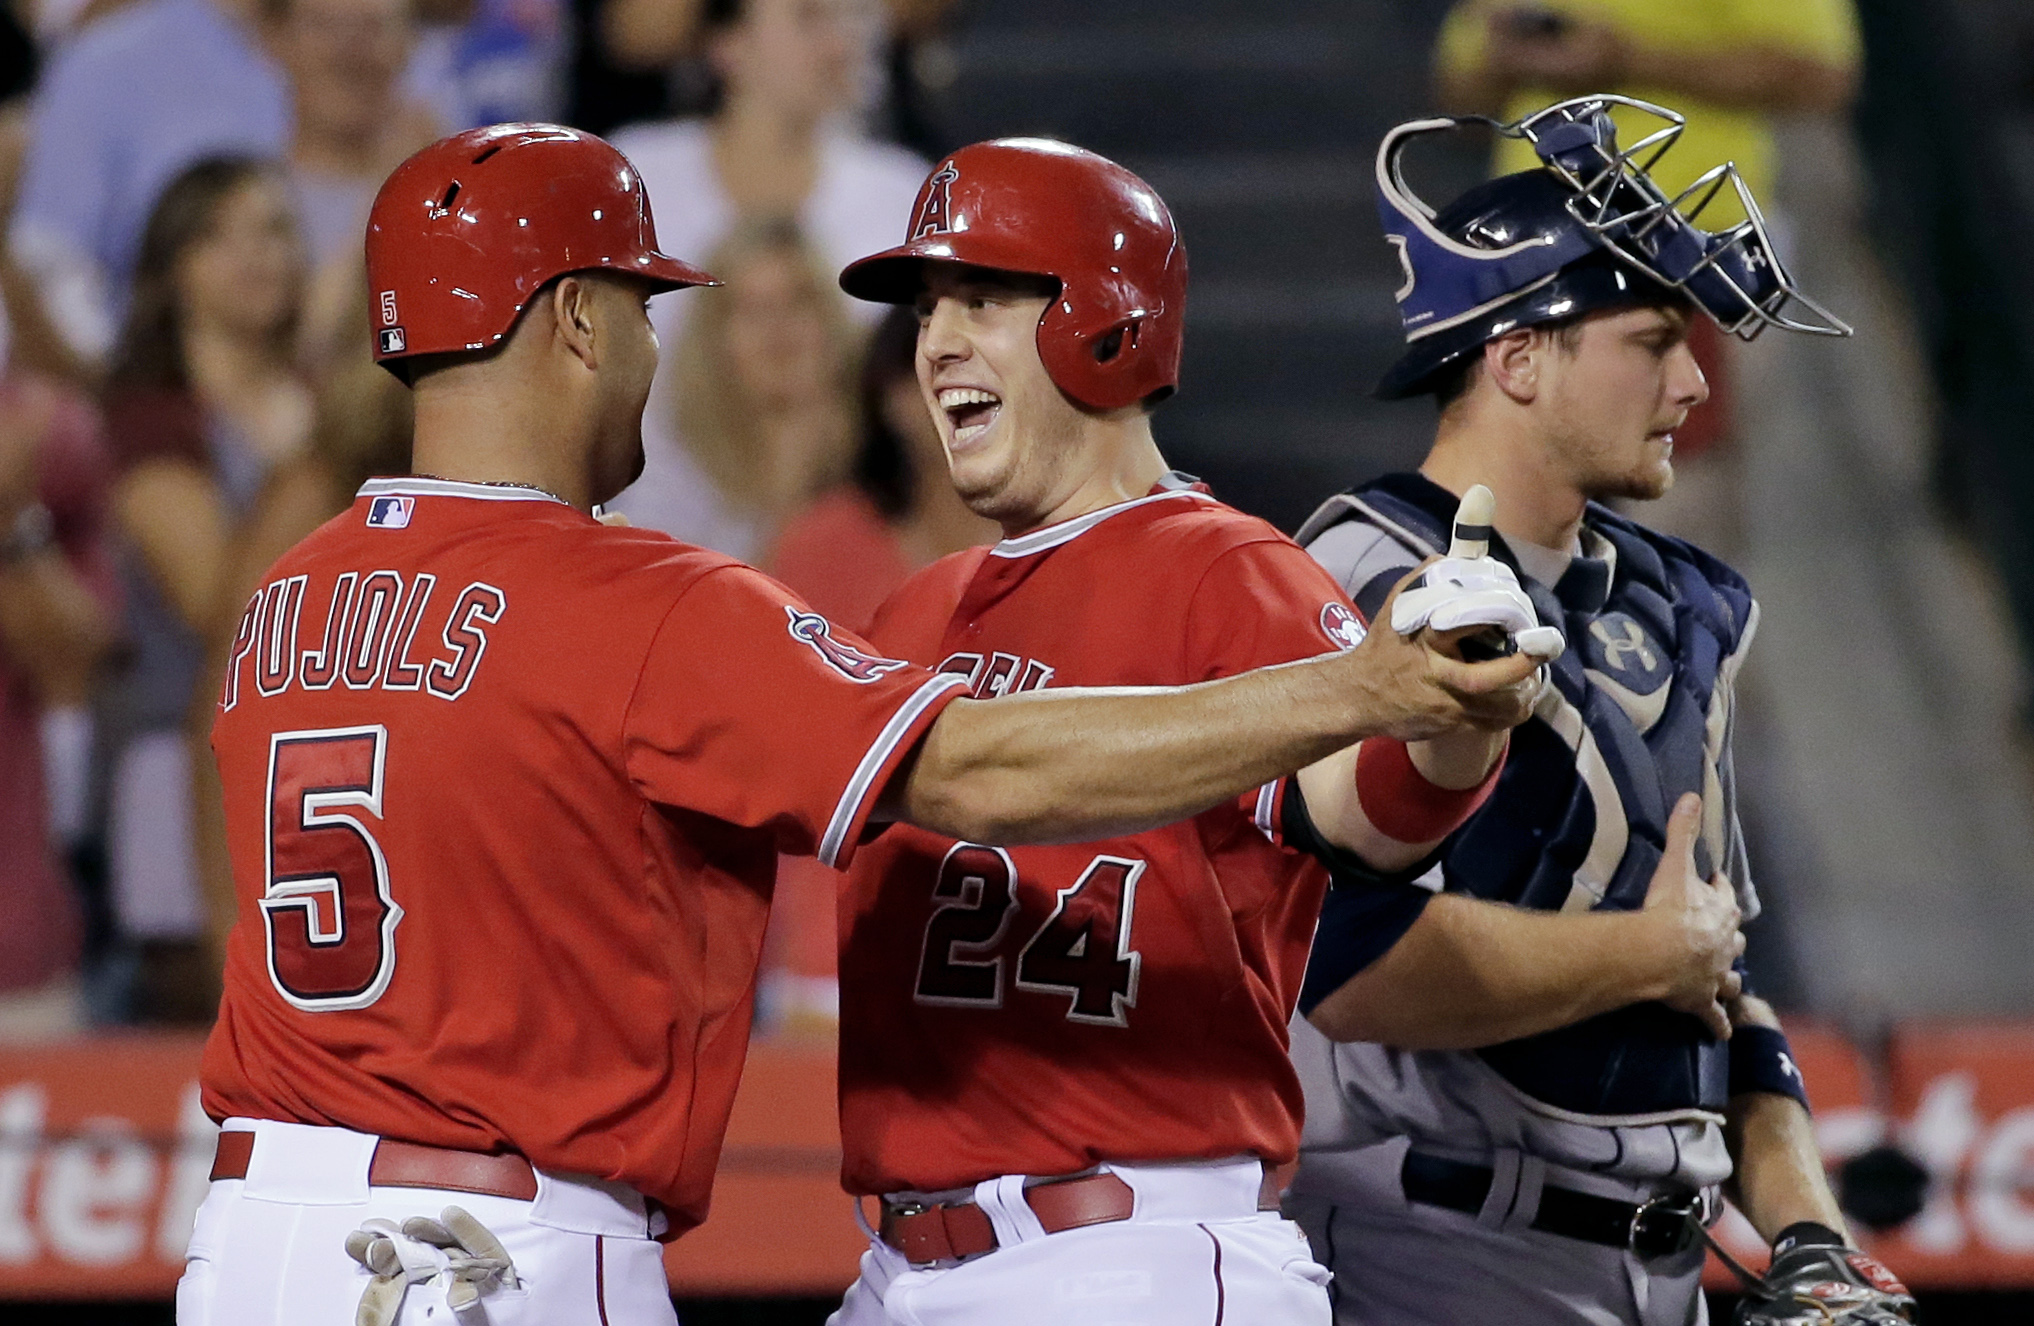 Los Angeles Angels' C.J. Cron, middle, celebrates after his two-run home run past Seattle Mariners catcher John Hicks, right, with Albert Pujols during the seventh inning of a baseball game in Anaheim, Calif., Friday, Sept. 25, 2015. (AP Photo/Chris Carls